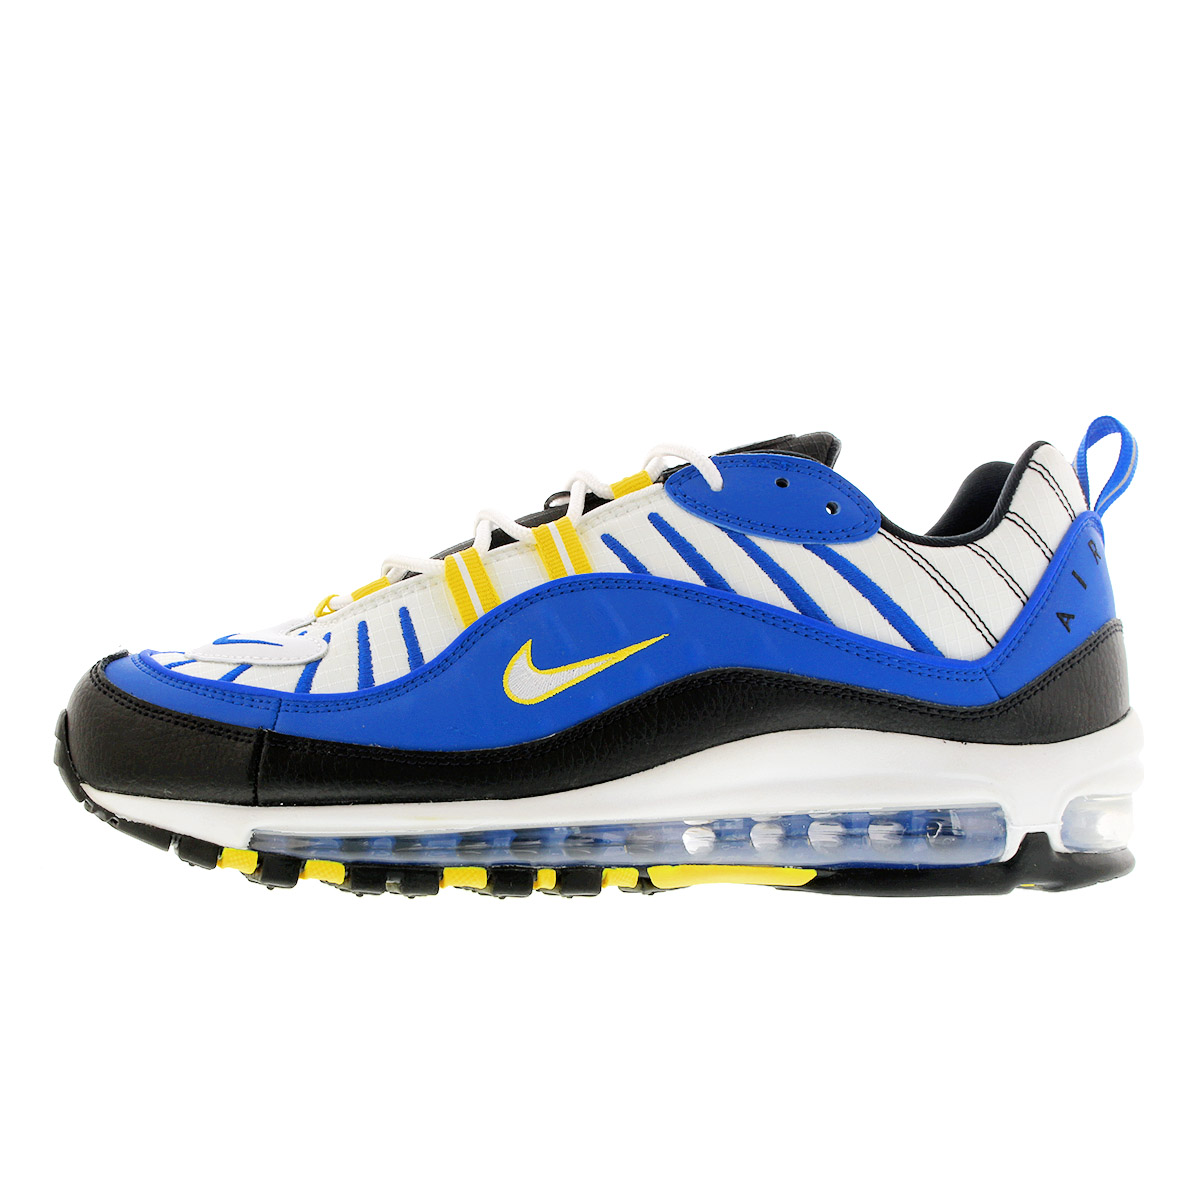 air max 98 blue and yellow